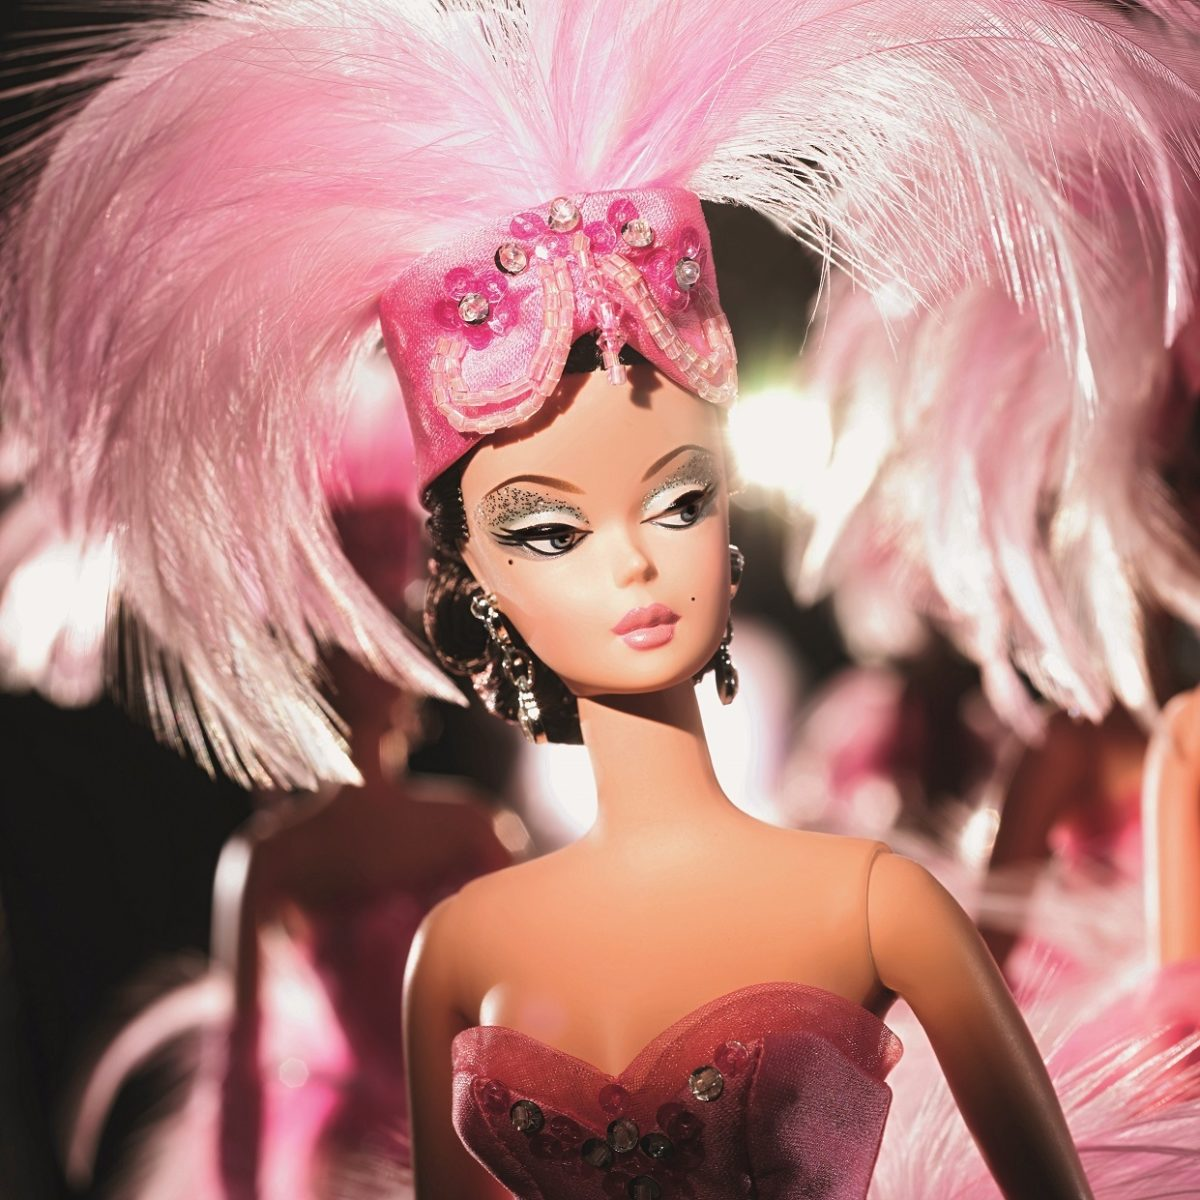 Barbie – The Icon Kansallismuseossa 26.8.2018 saakka. / At the National Museum of Finland: Barbie – The Icon until 26.8.2018